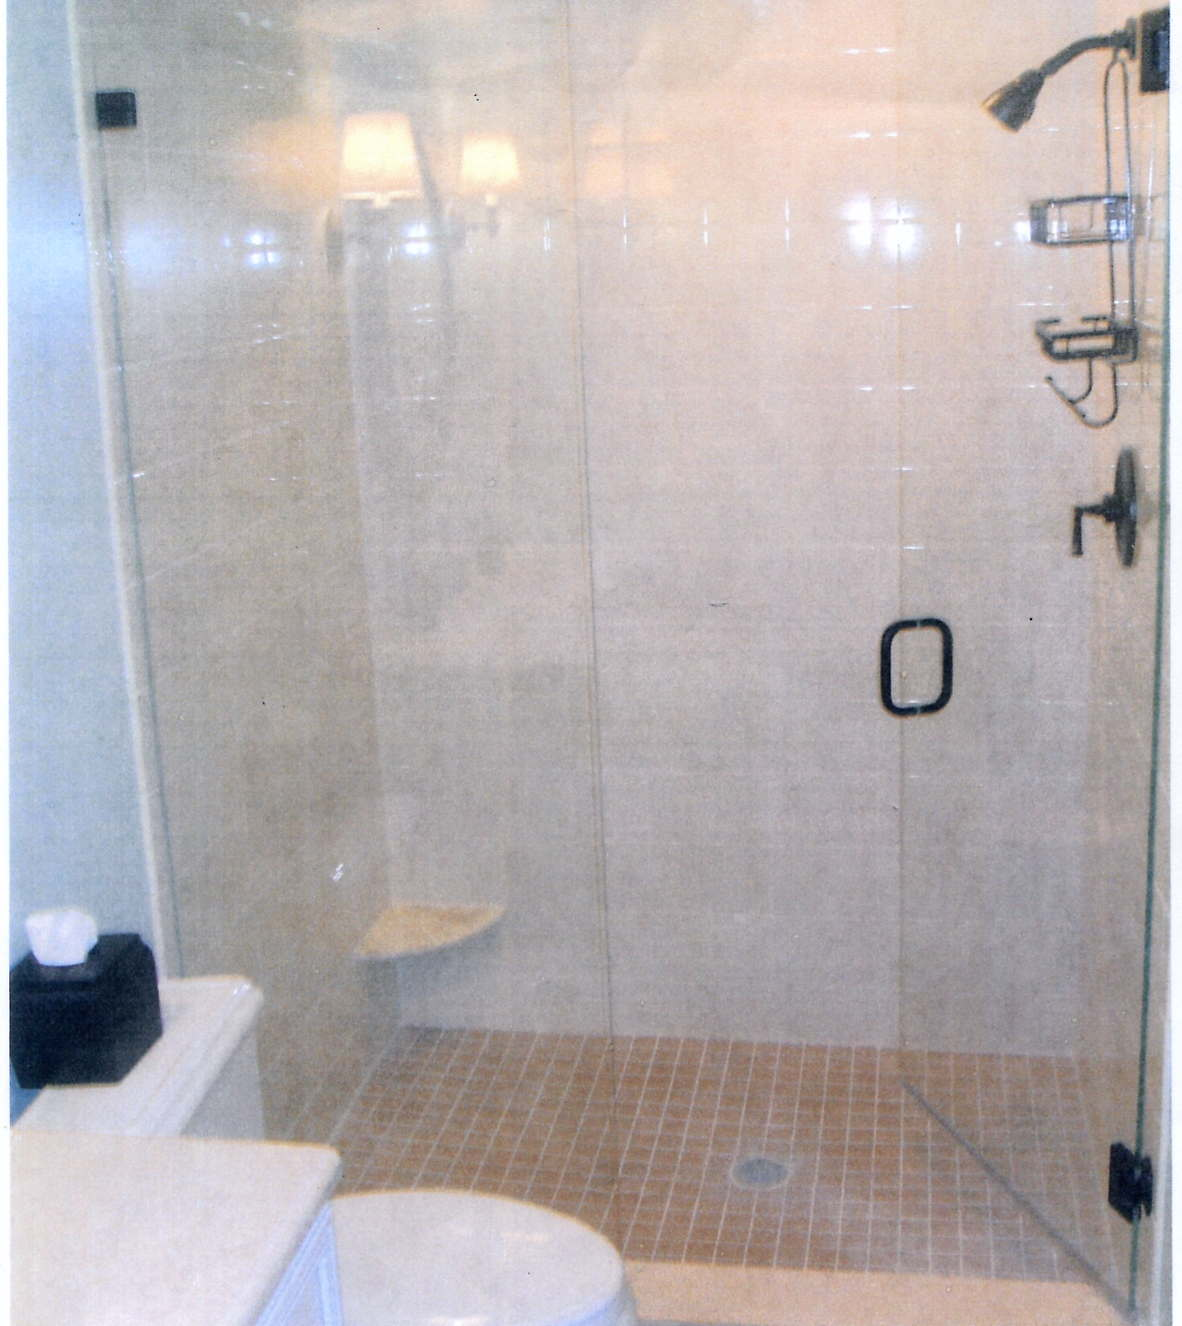 shower enclosures types with different styles and impressions. Frameless-shower-doors-modern-clean-contemporary-rockville-md. Shower Enclosures Types With Different Styles And Impressions